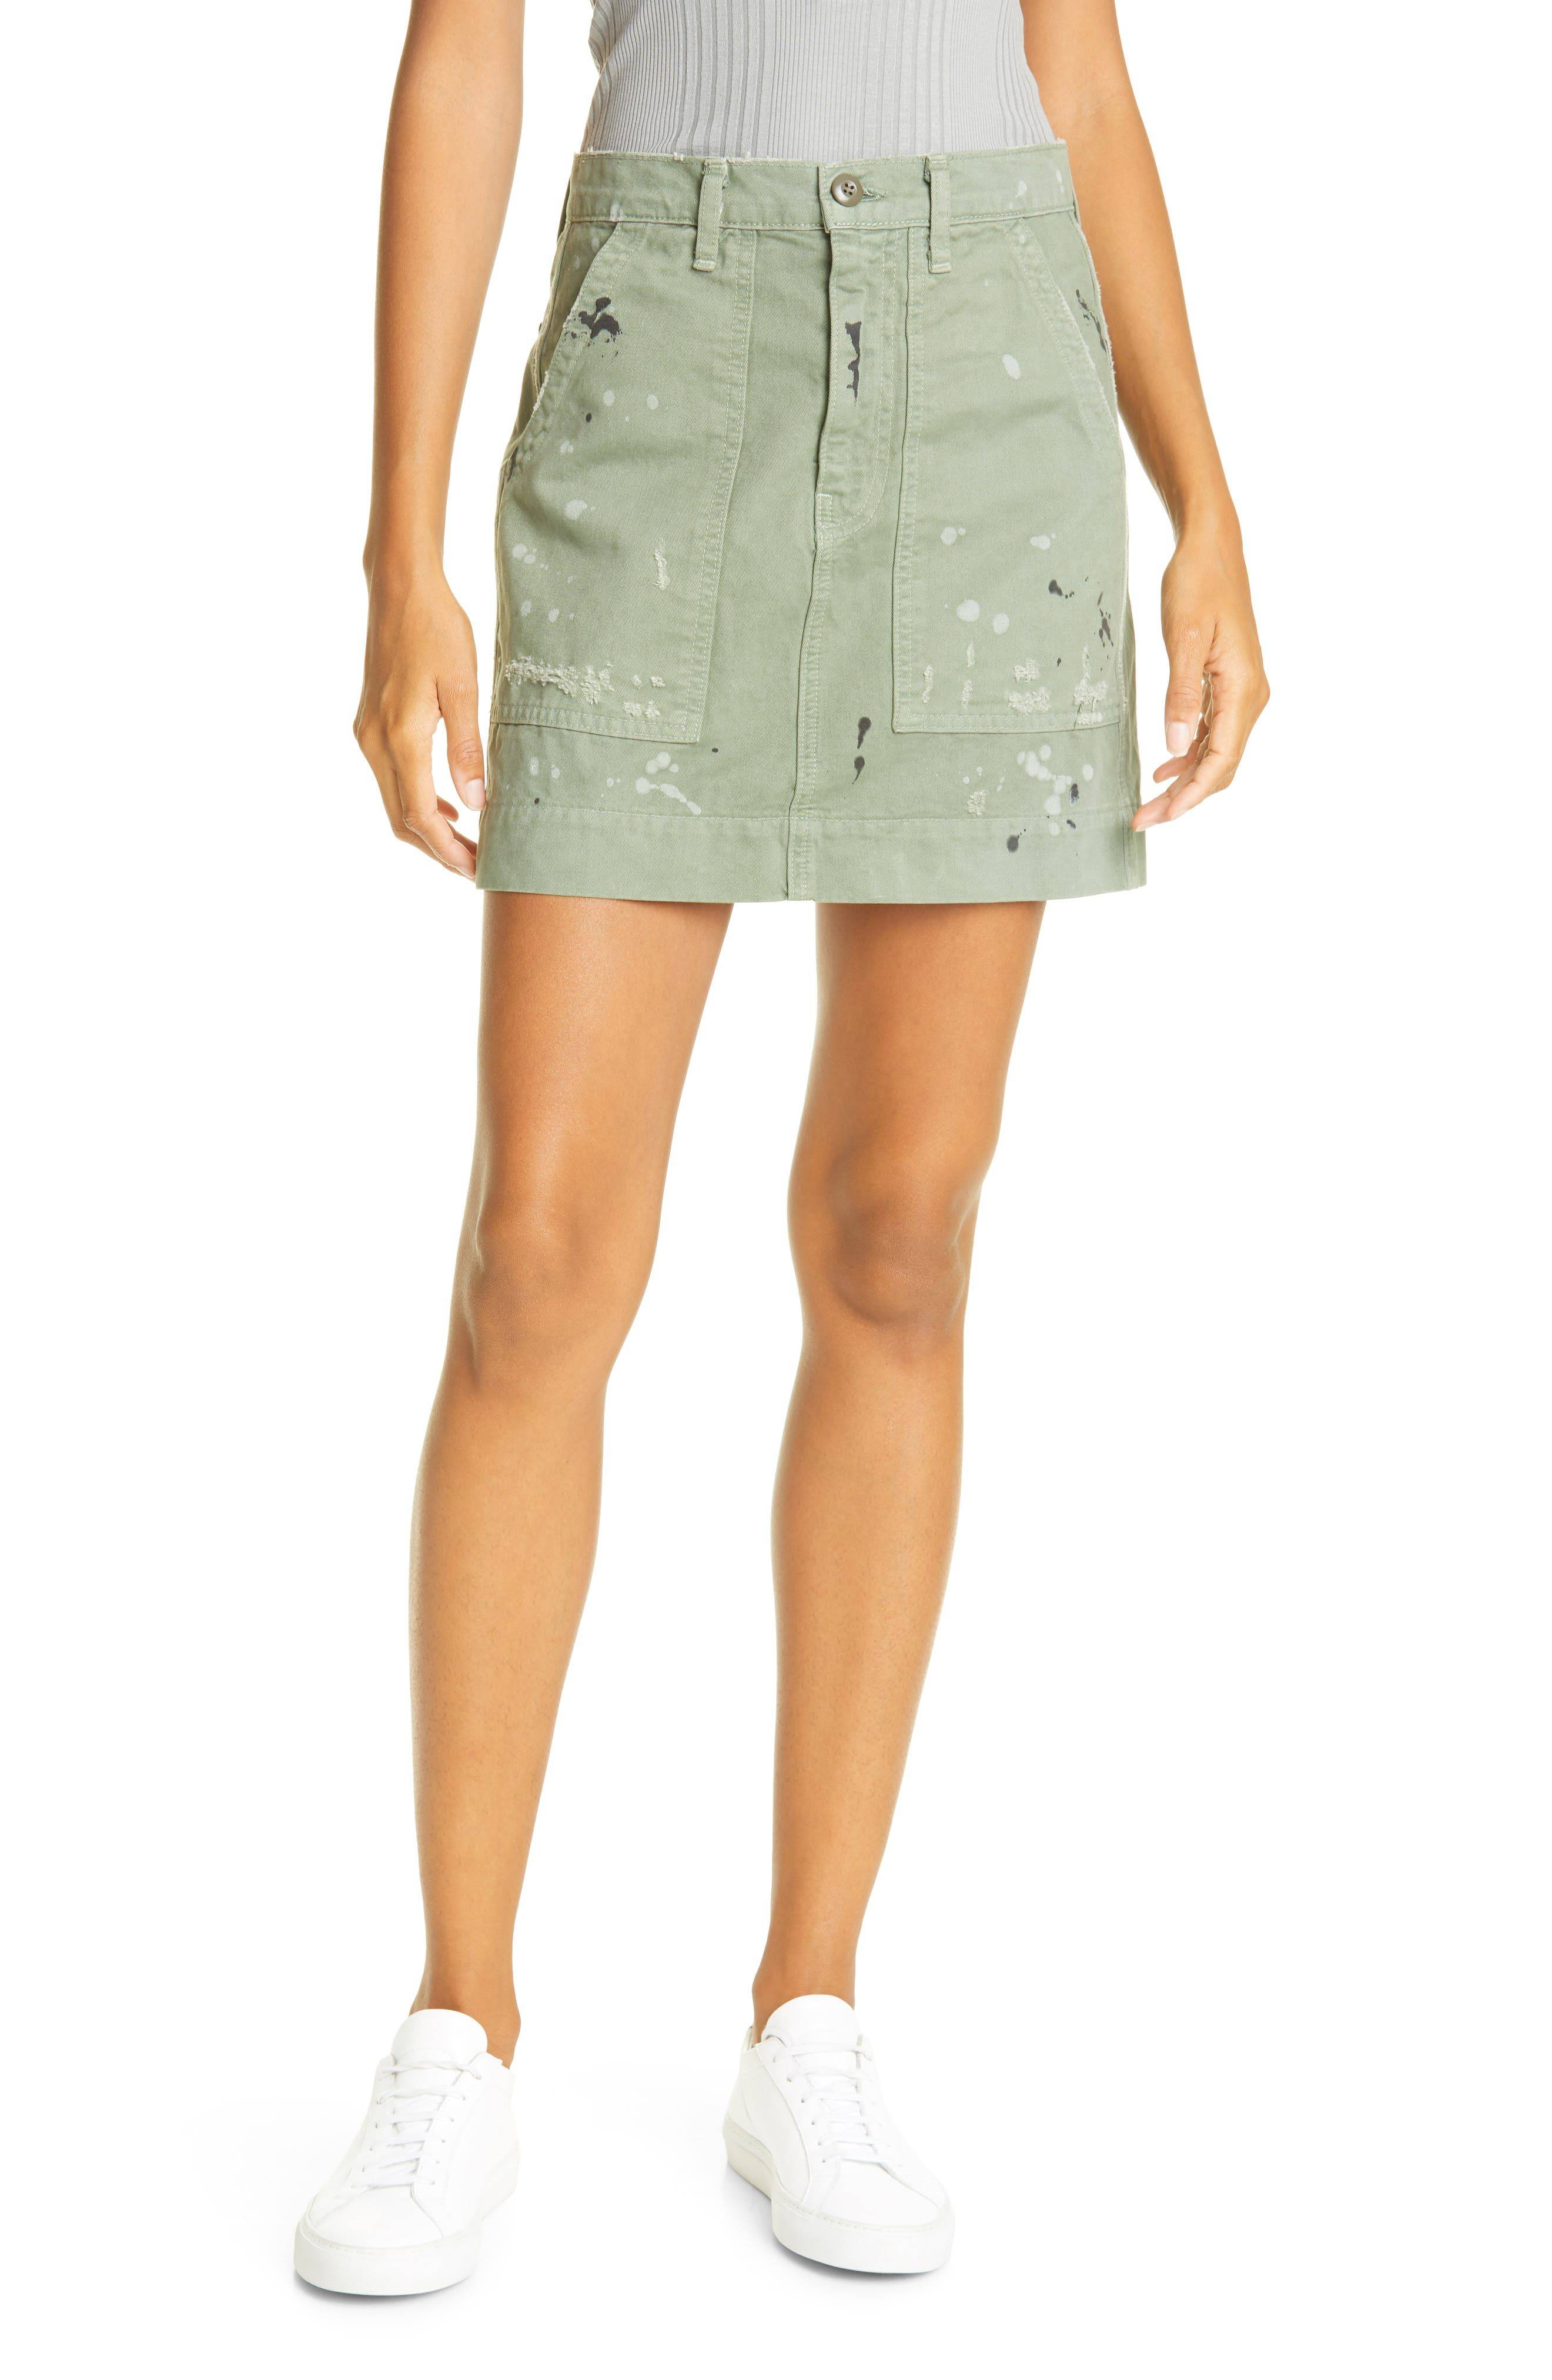 NSF Clothing Women's Nsf Clothing Goldie Painted Miniskirt, Size 24 - Green